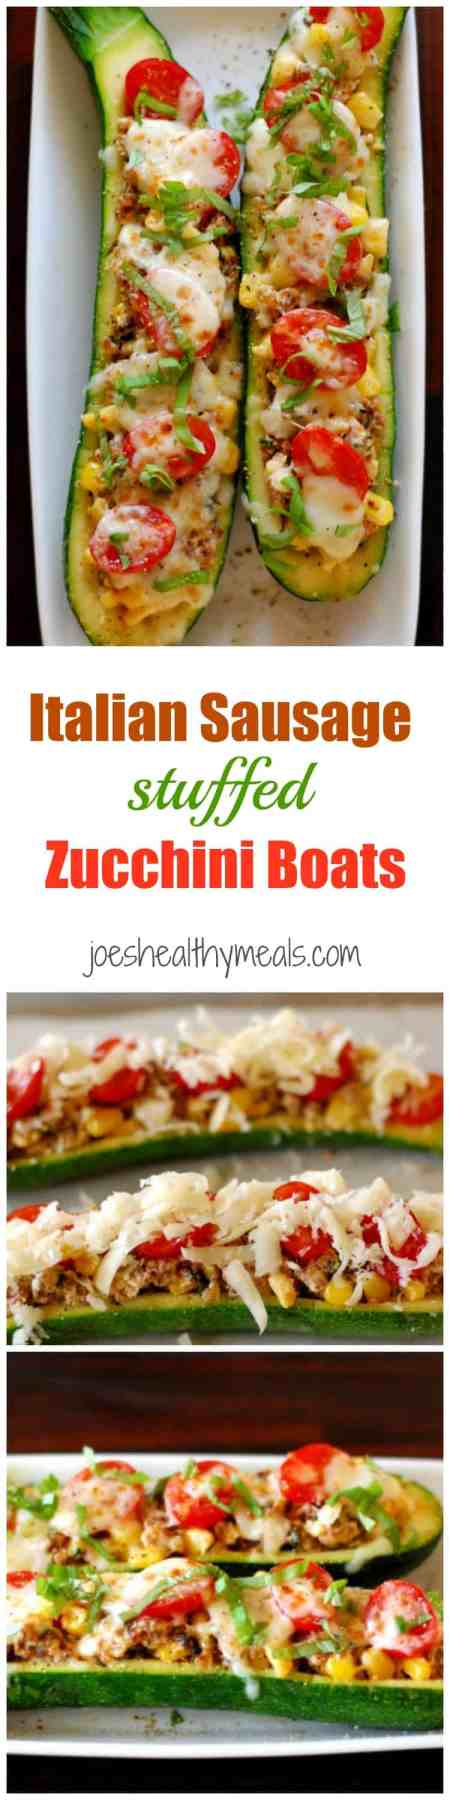 Italian sausage stuffed zucchini boats. This recipe is a delicious way to serve zucchini, either as a main dish or cut up for an appetizer. | joeshealthymeals.com